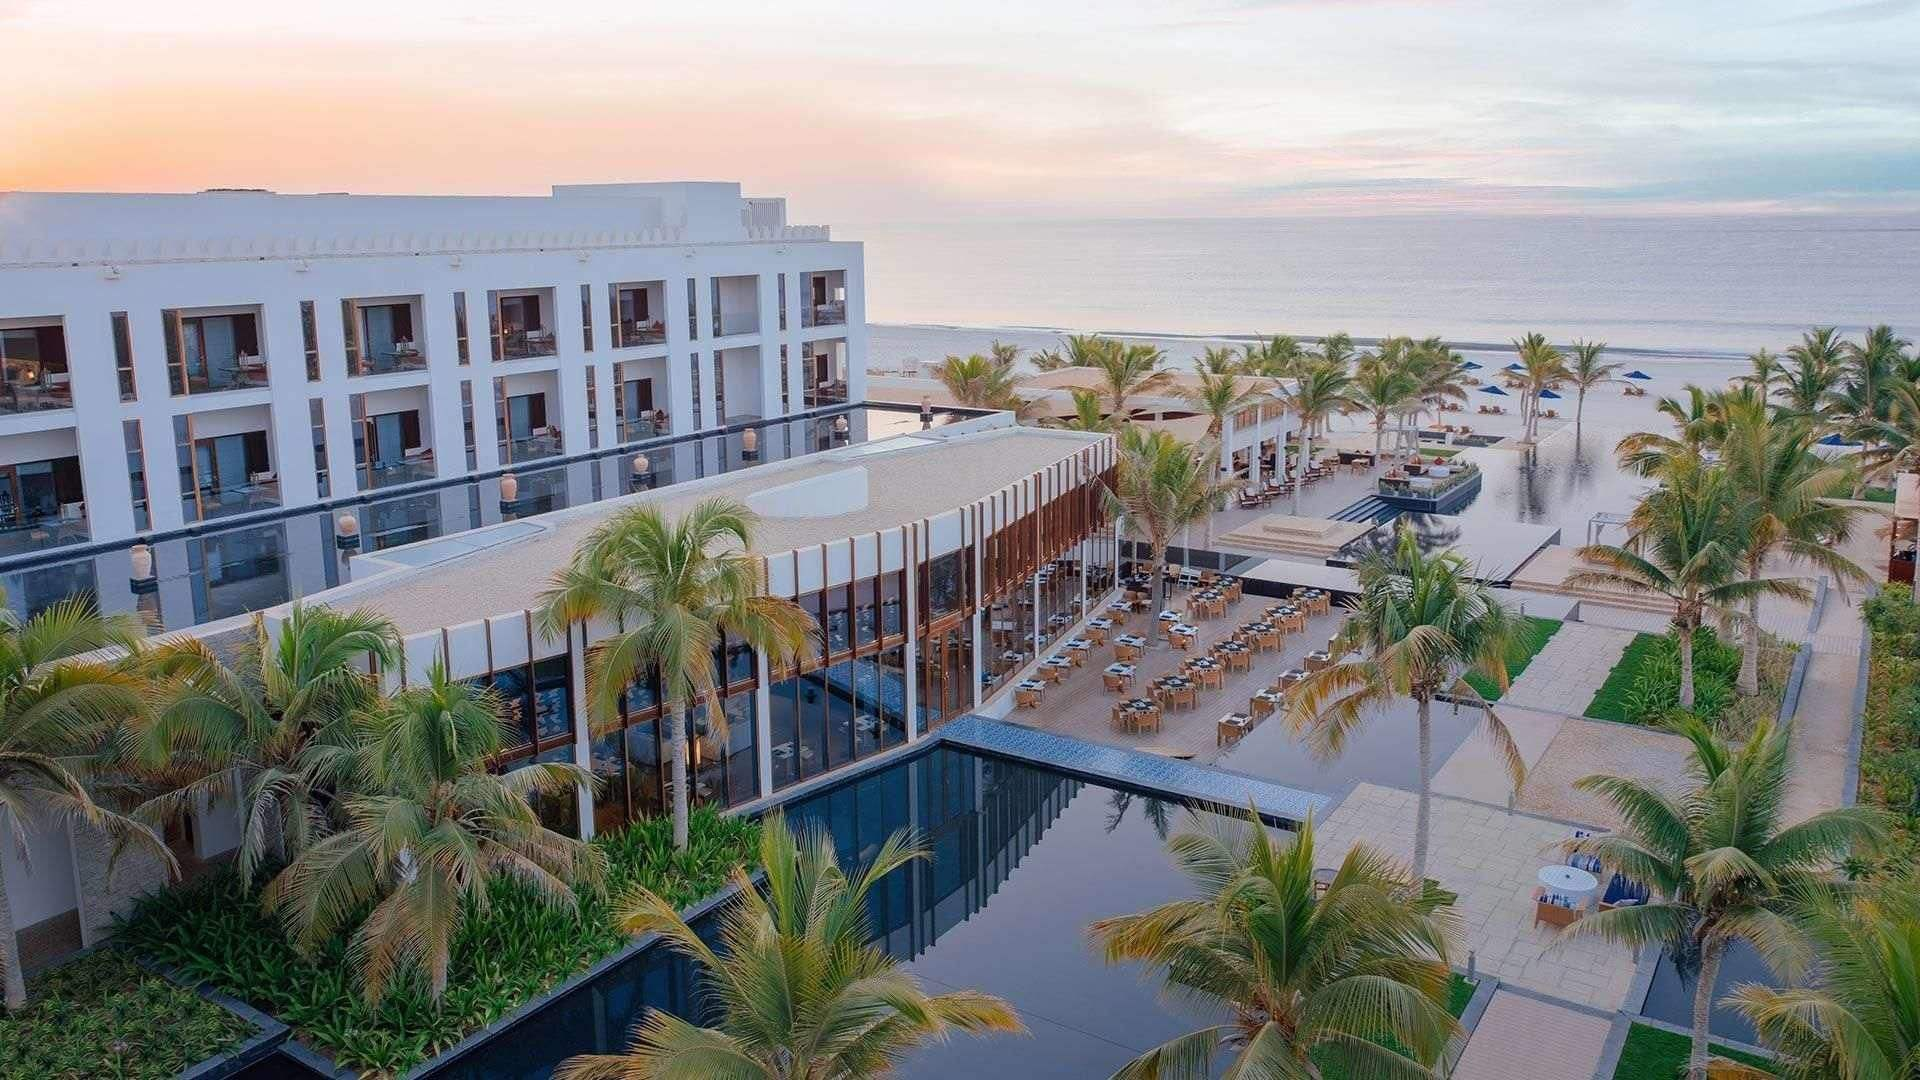 AABS_AlBaleed_Anantara_Other_Hotel_Images_1_1920_1080_property_banner_20190815